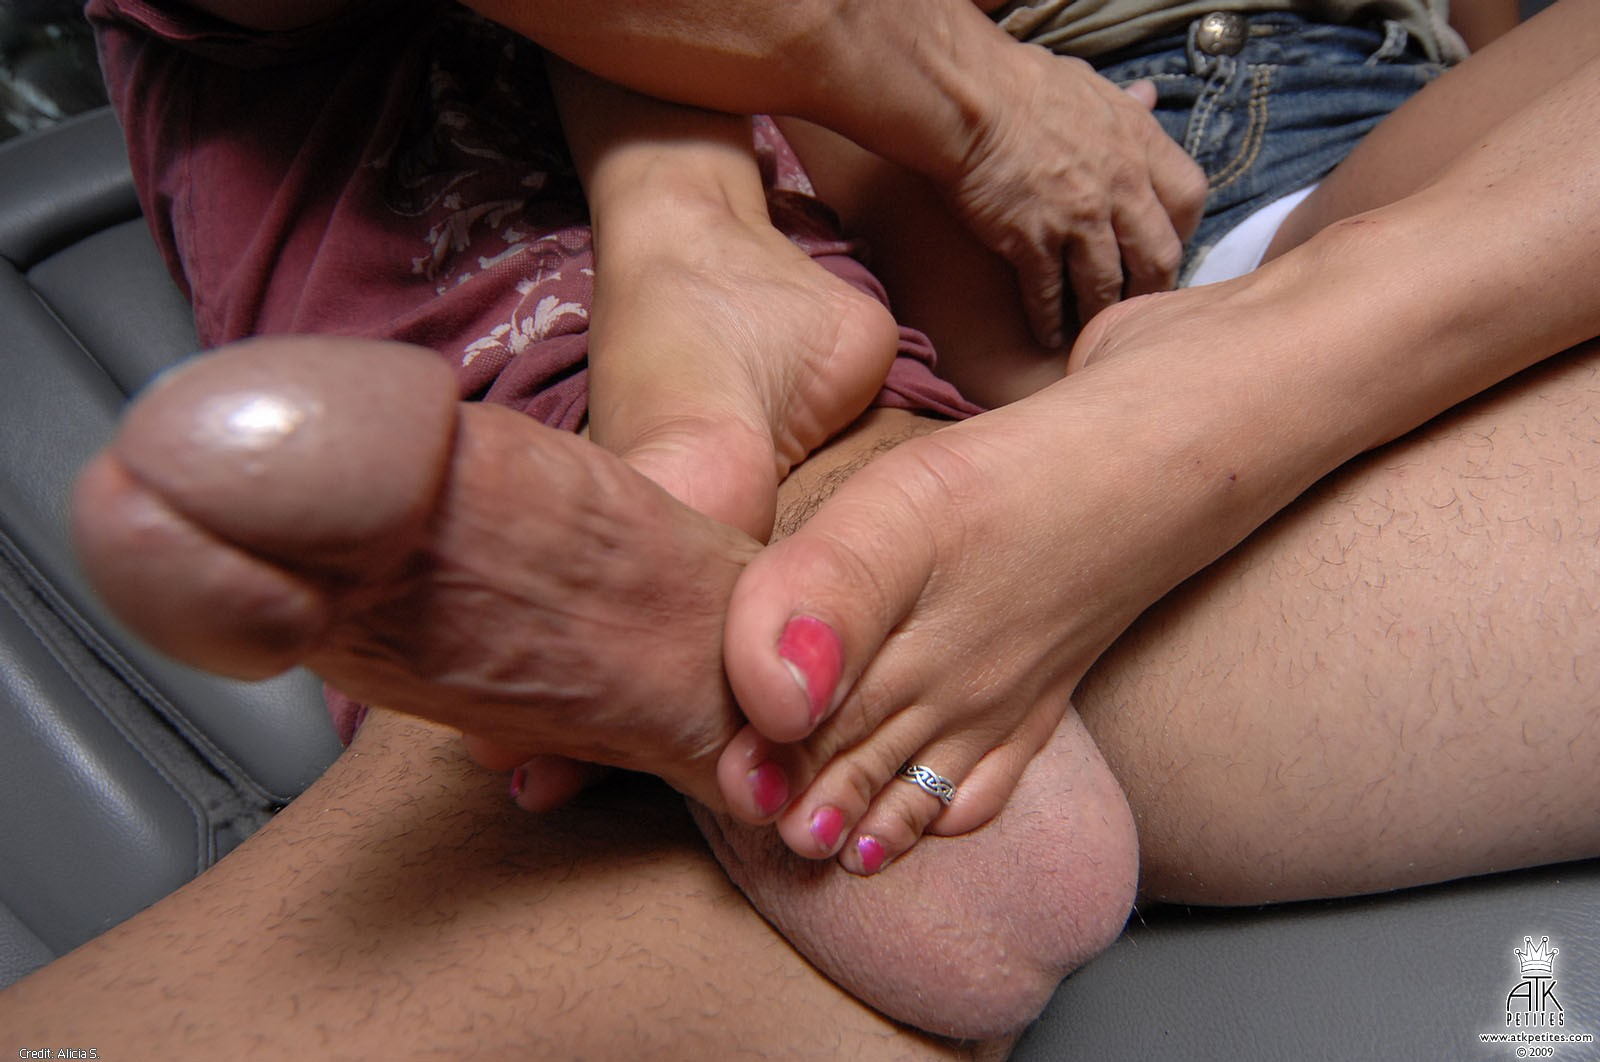 Charley lucha libre foot fetish - 2 part 7